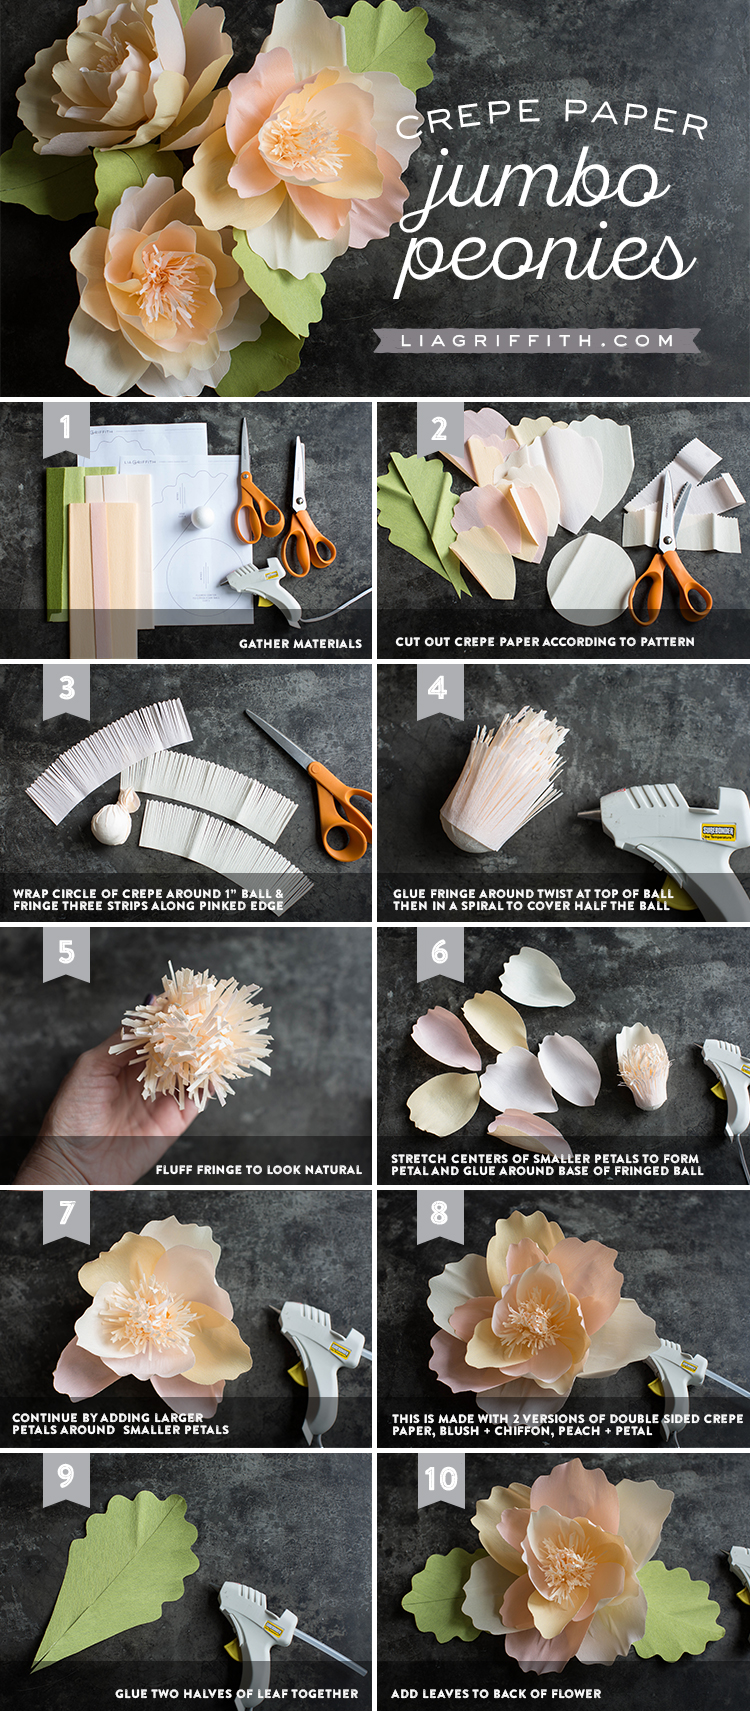 How to Make Jumbo Paper Peonies